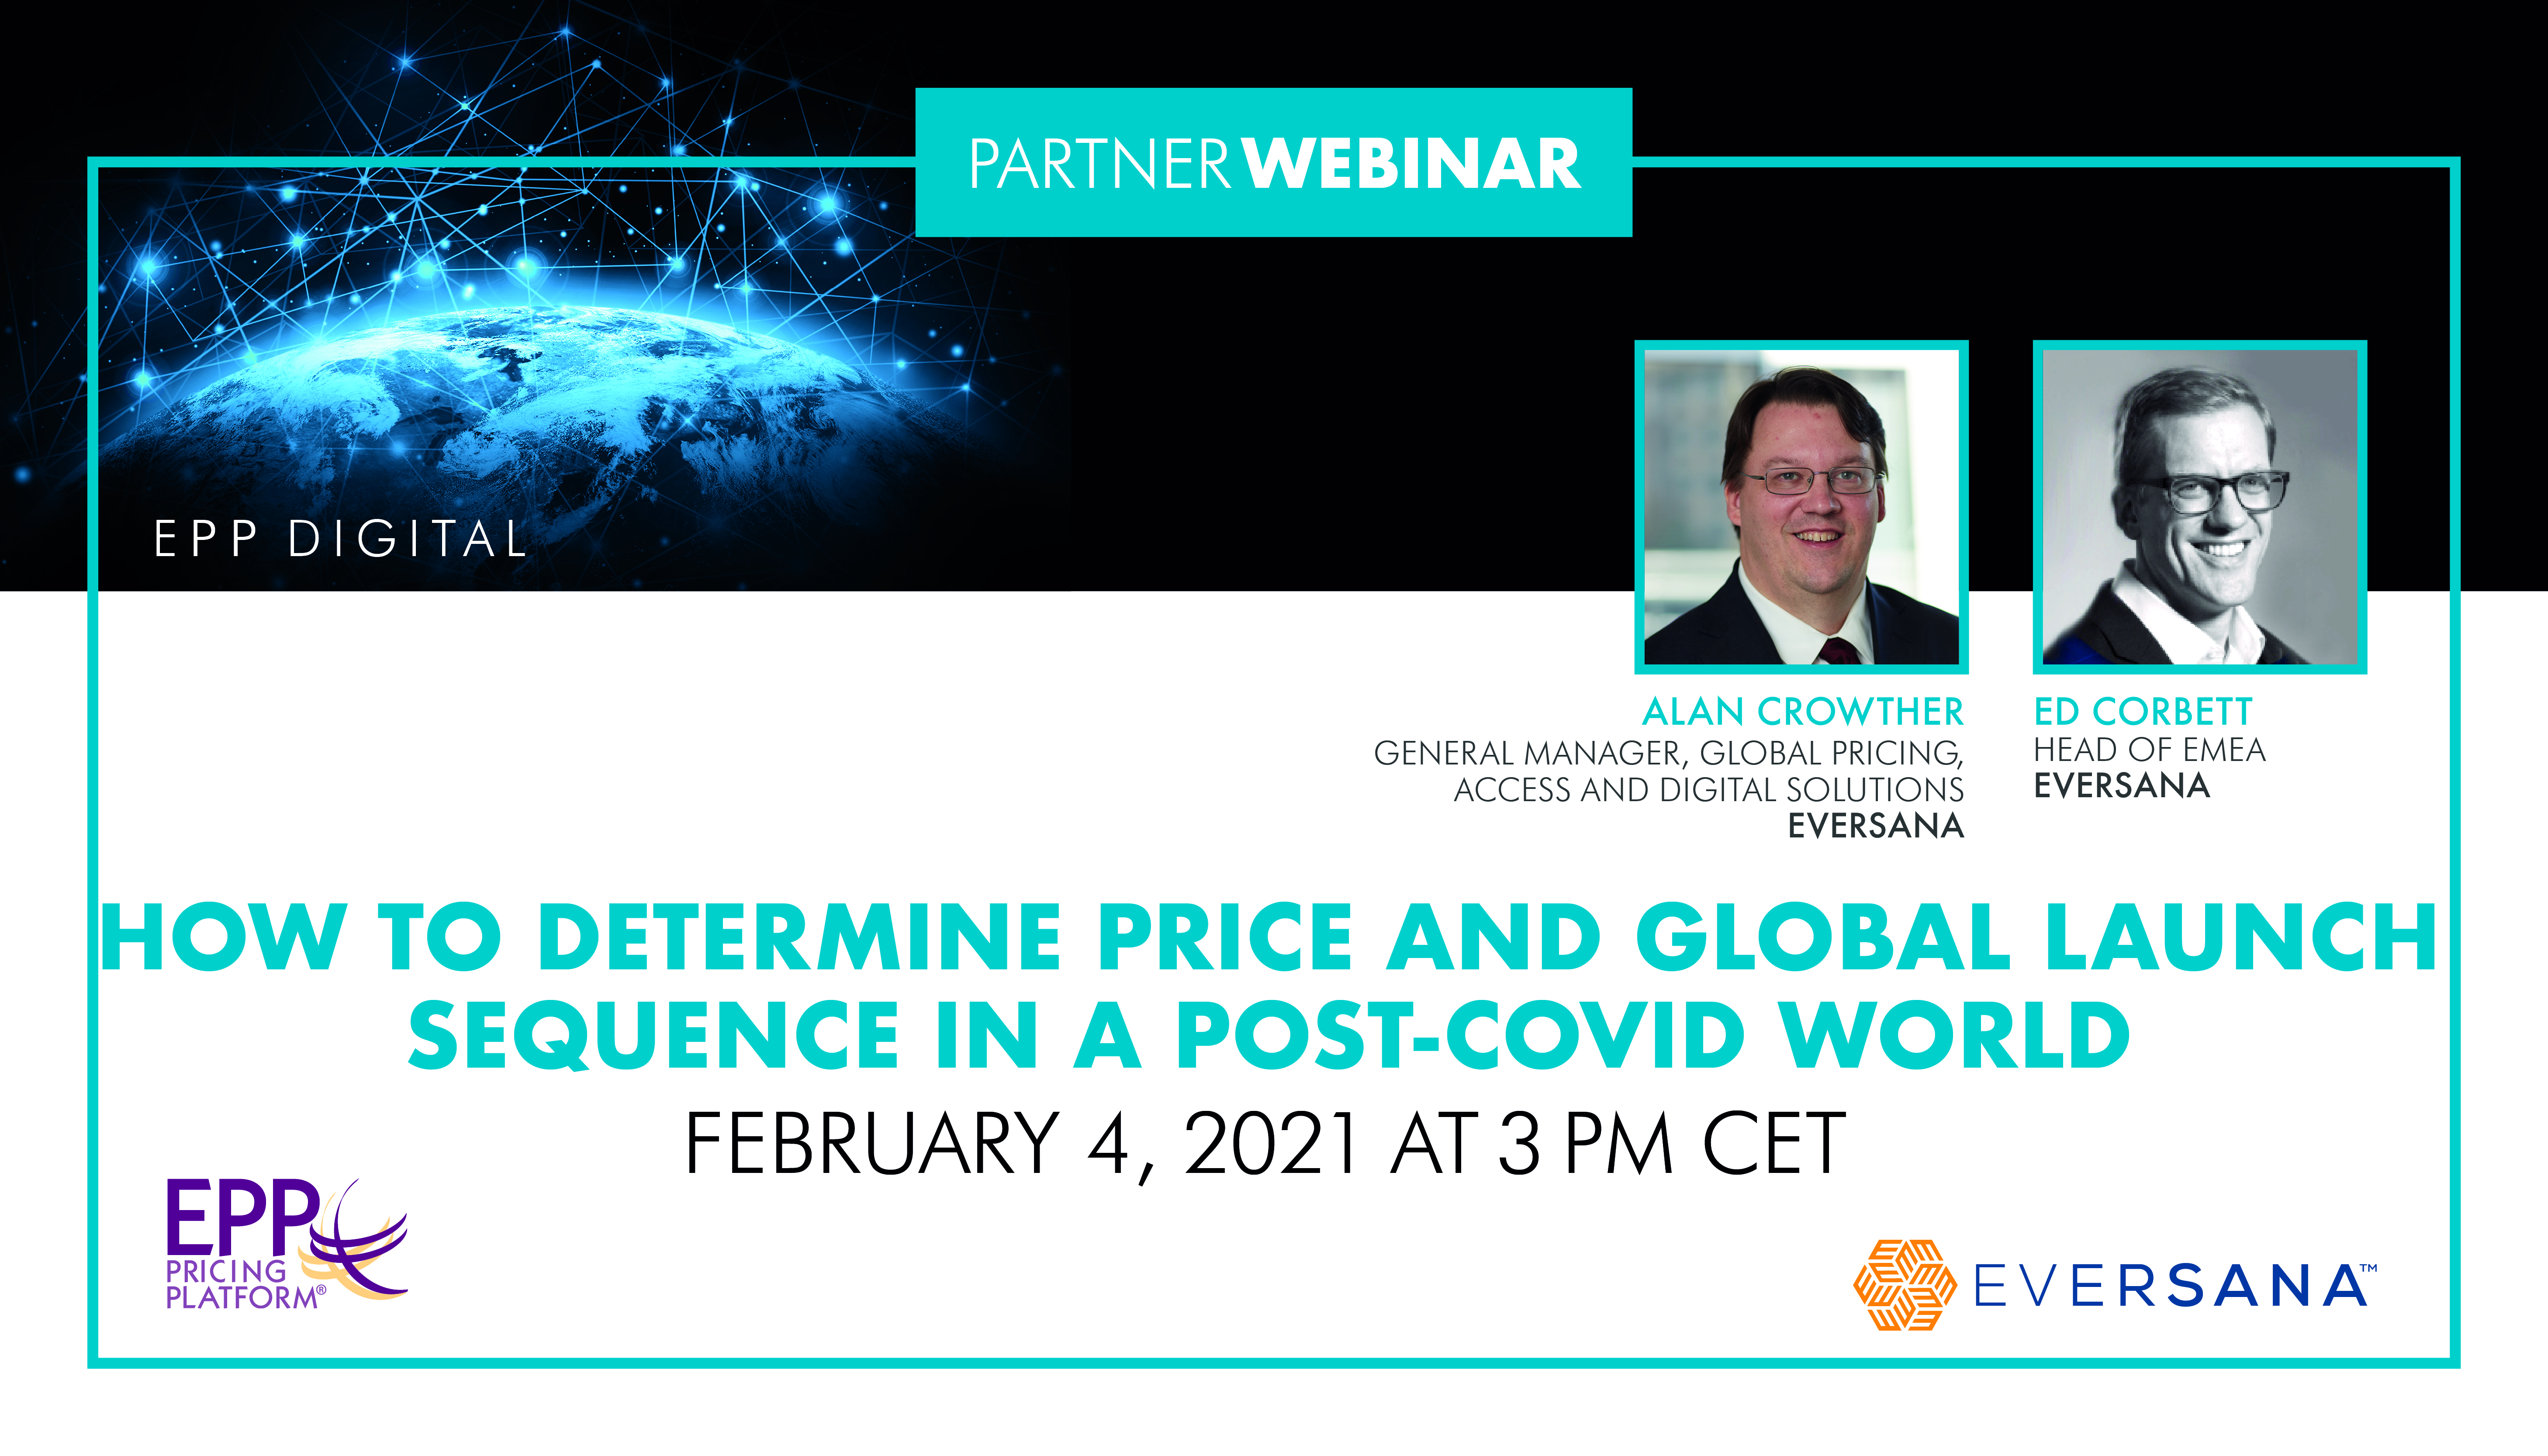 How to Determine Price and Global Launch Sequence in a Post-COVID World